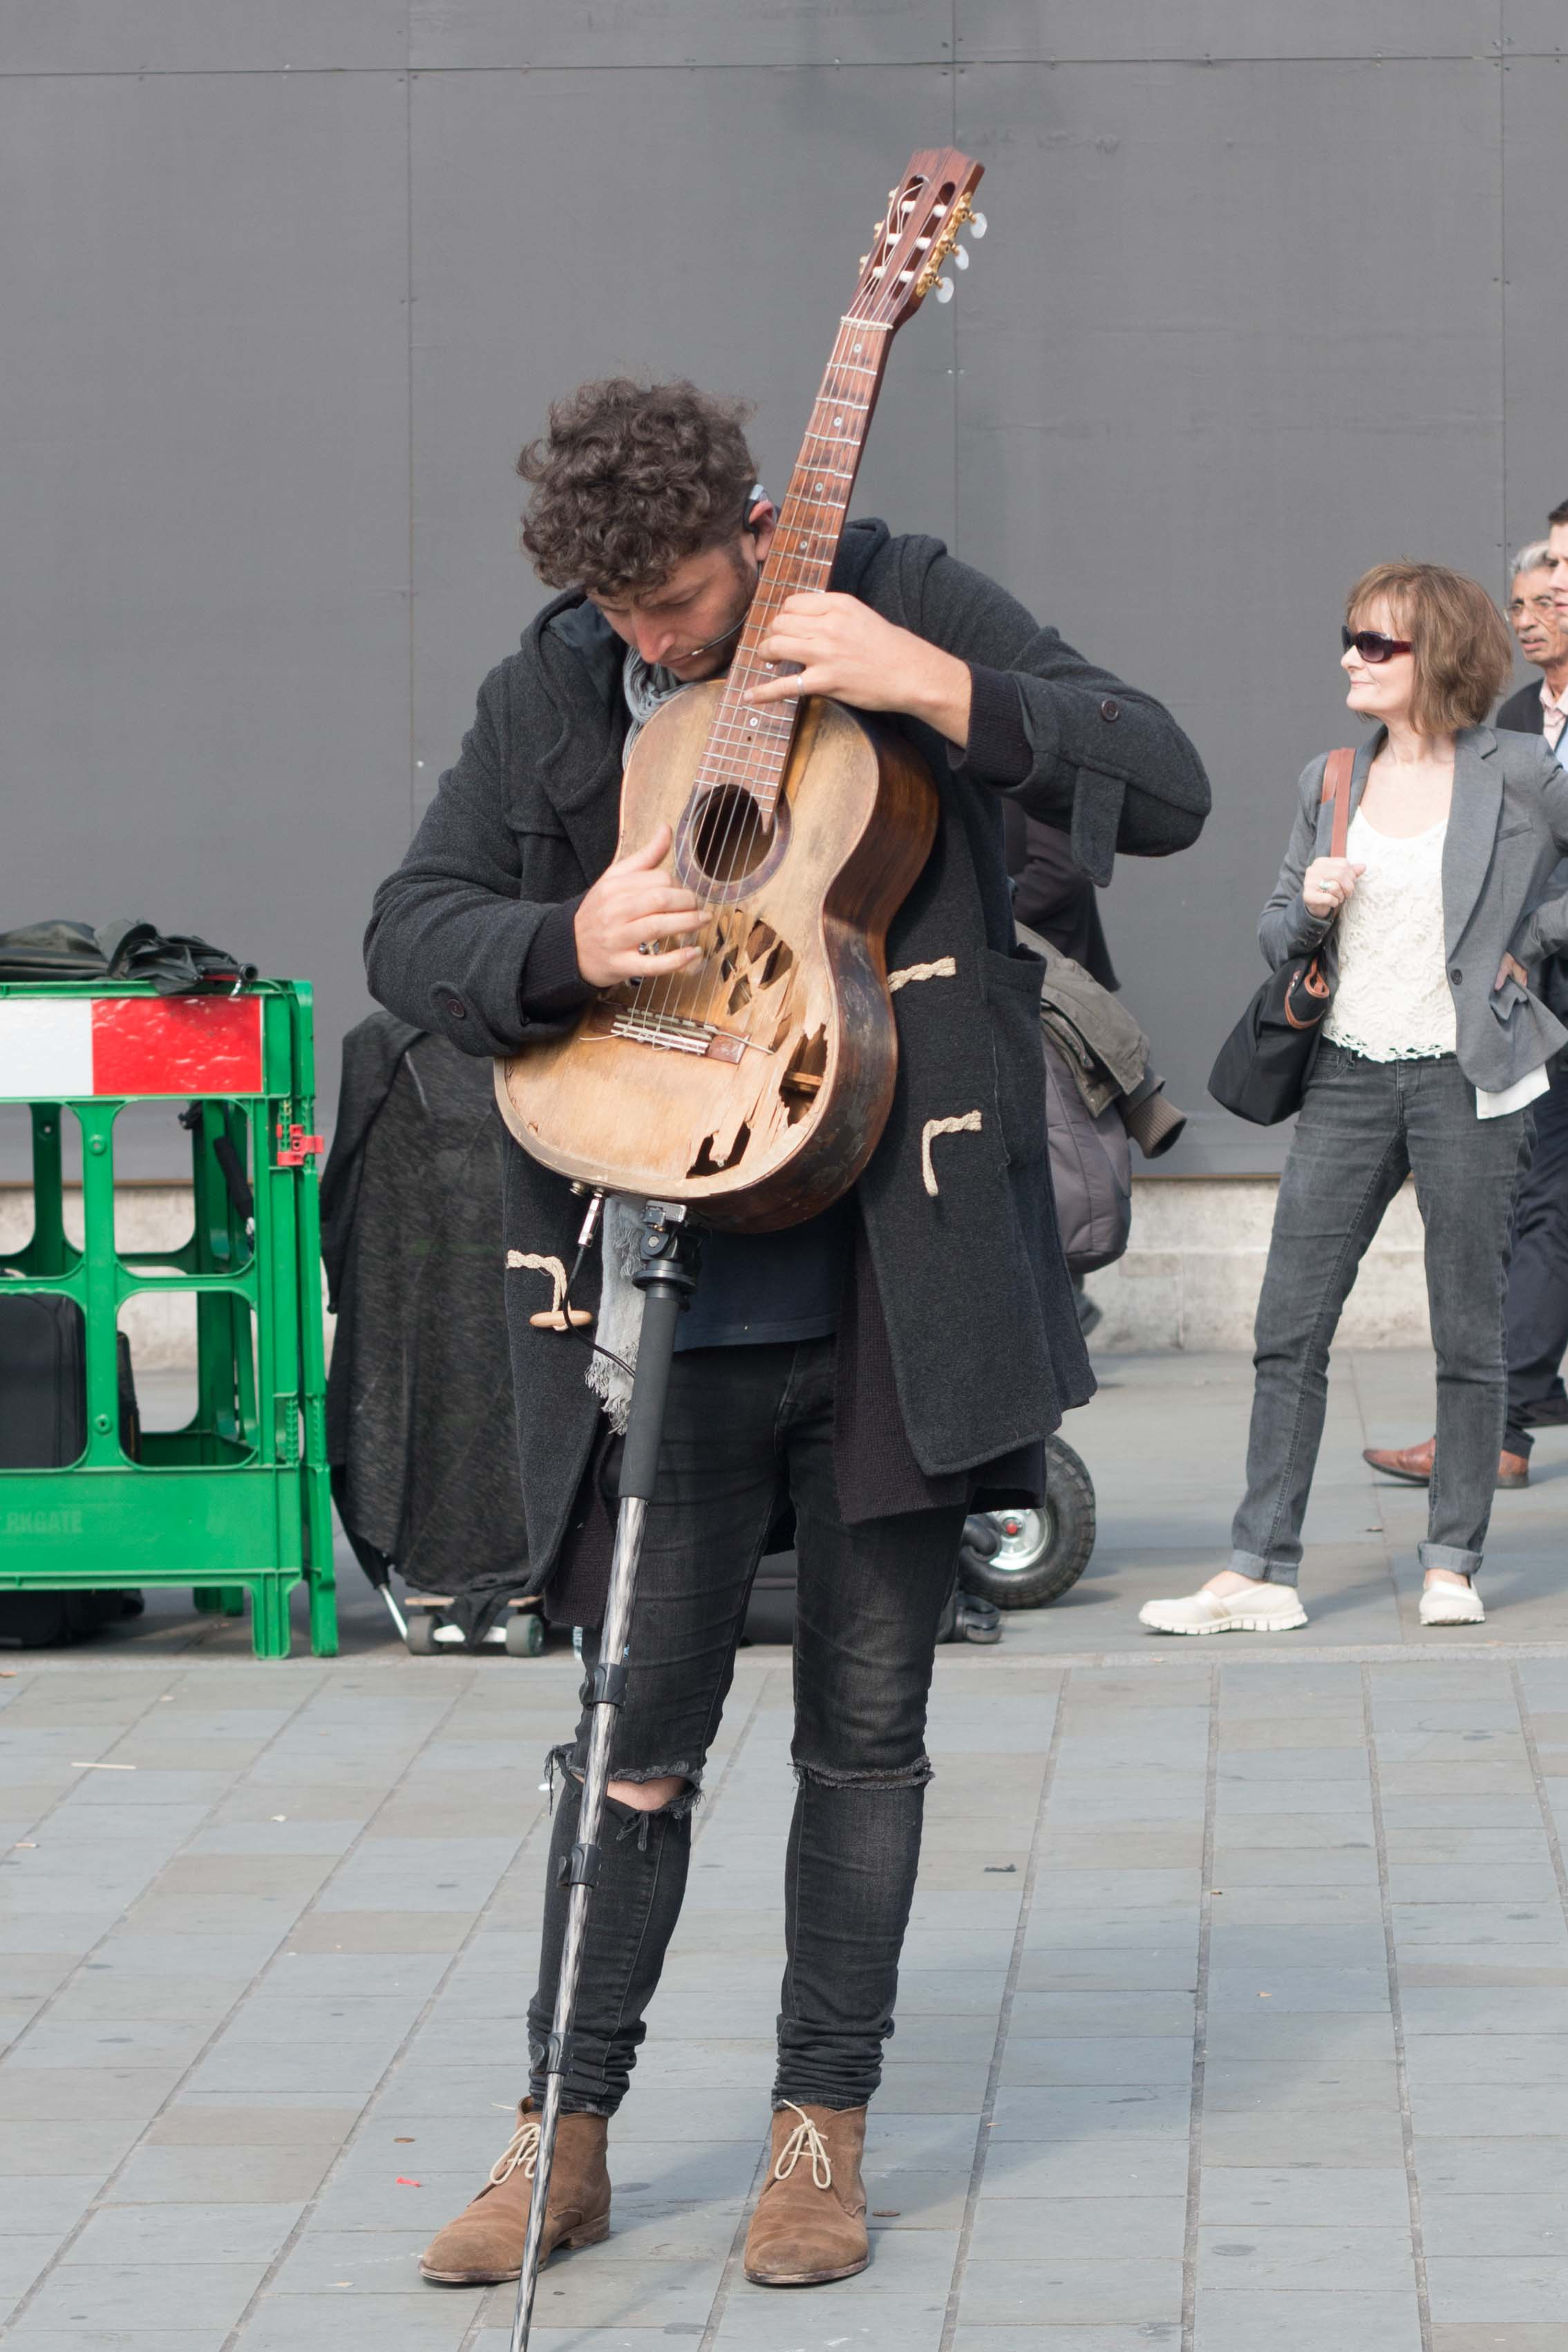 Street musicians outside of the National Gallery